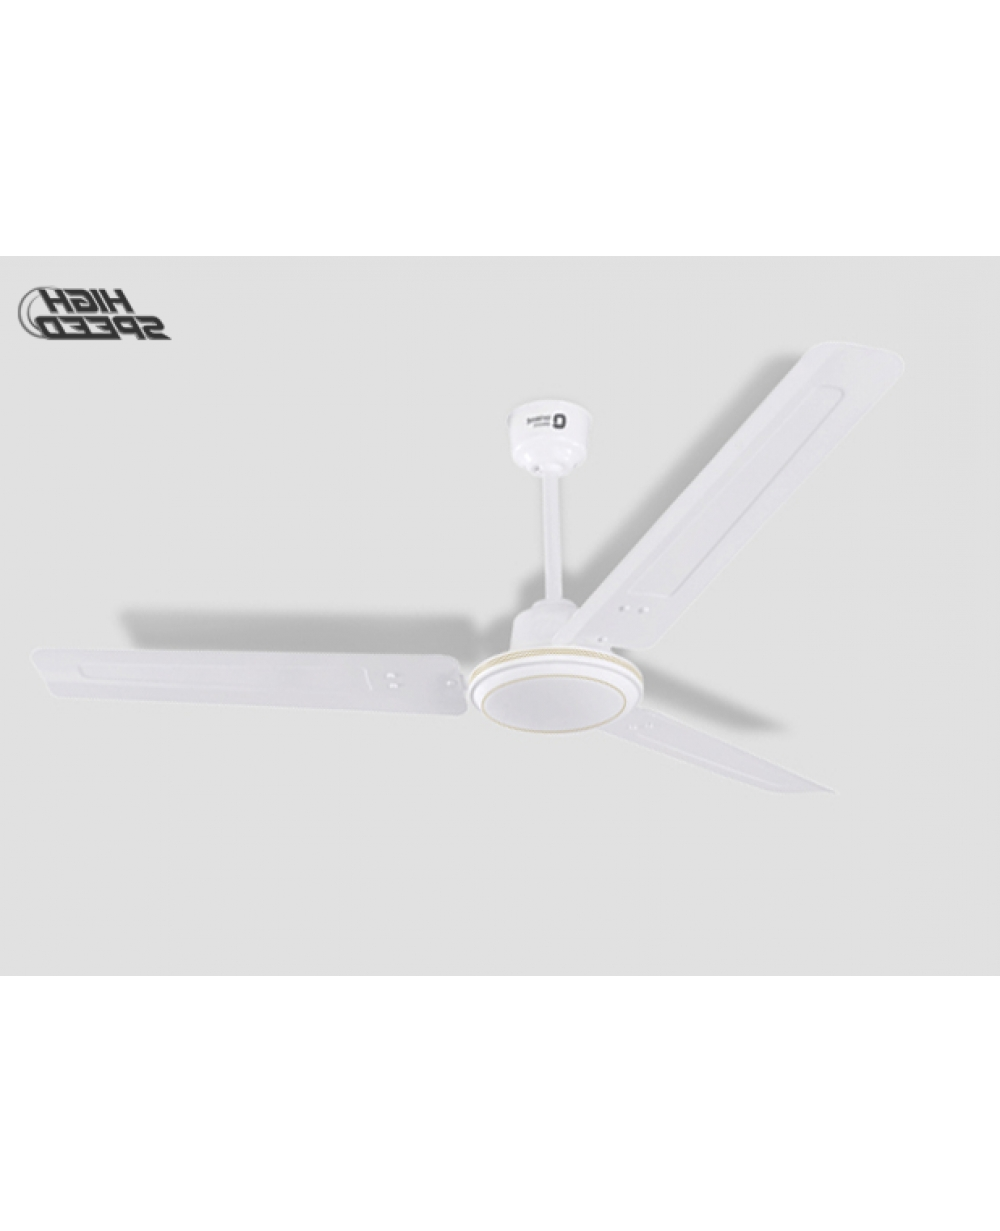 Hurricane Outdoor Ceiling Fans With Favorite Orient New Hurricane 48 Inch 68 Watt High Speed Ceiling Fan (white) (View 6 of 20)